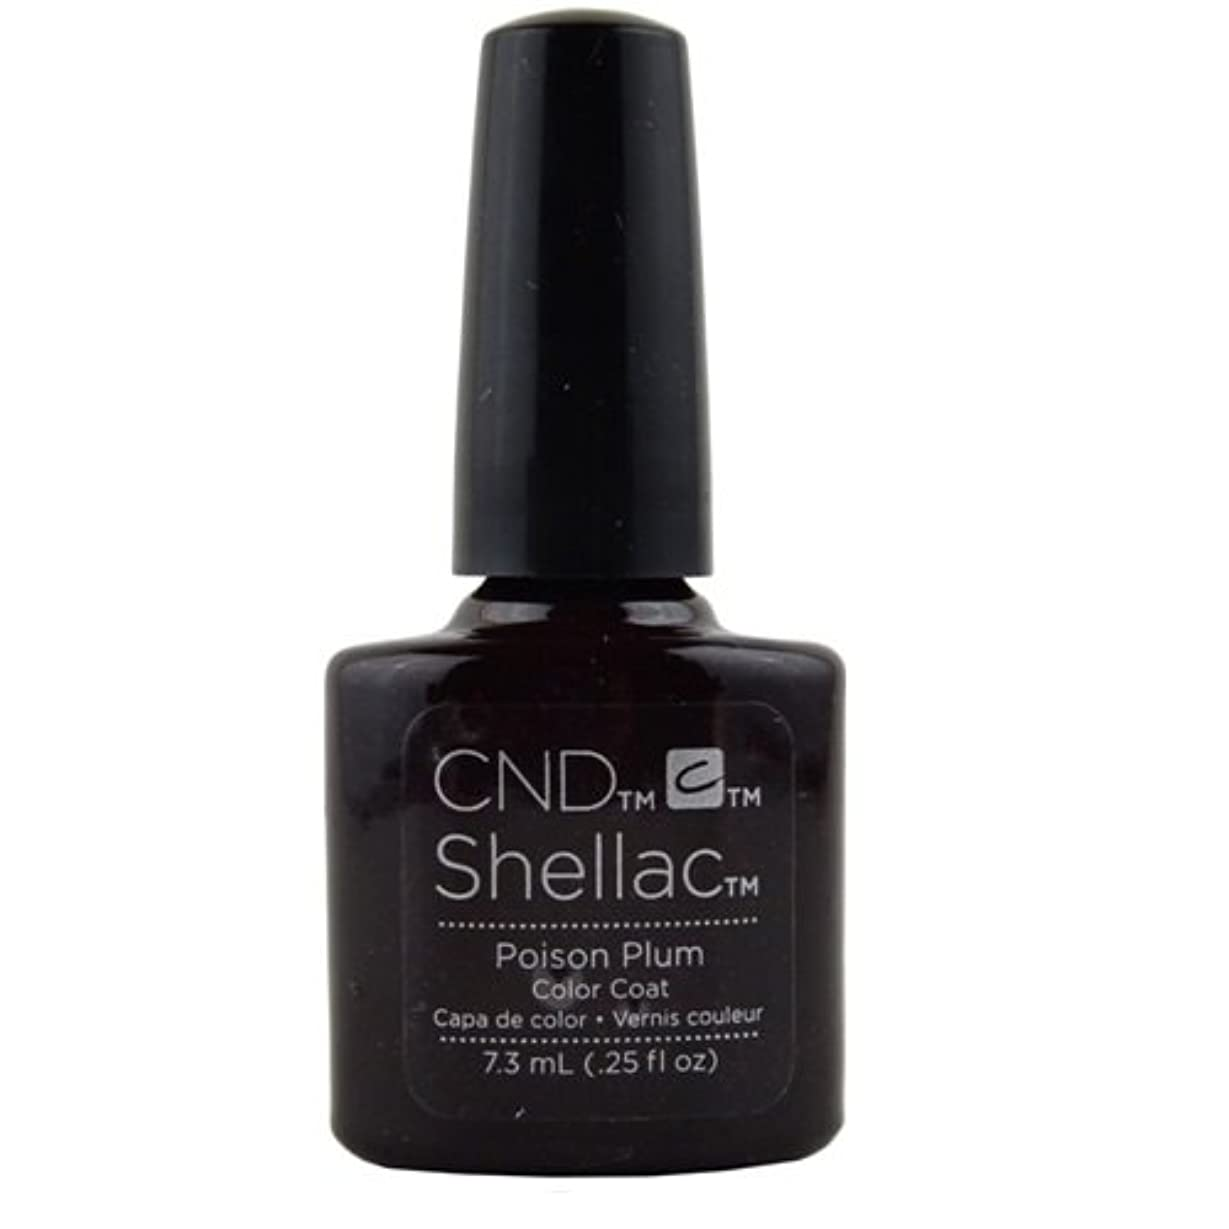 予算使い込む幸福CND Shellac Gel Polish - Poison Plum - 0.25oz / 7.3ml